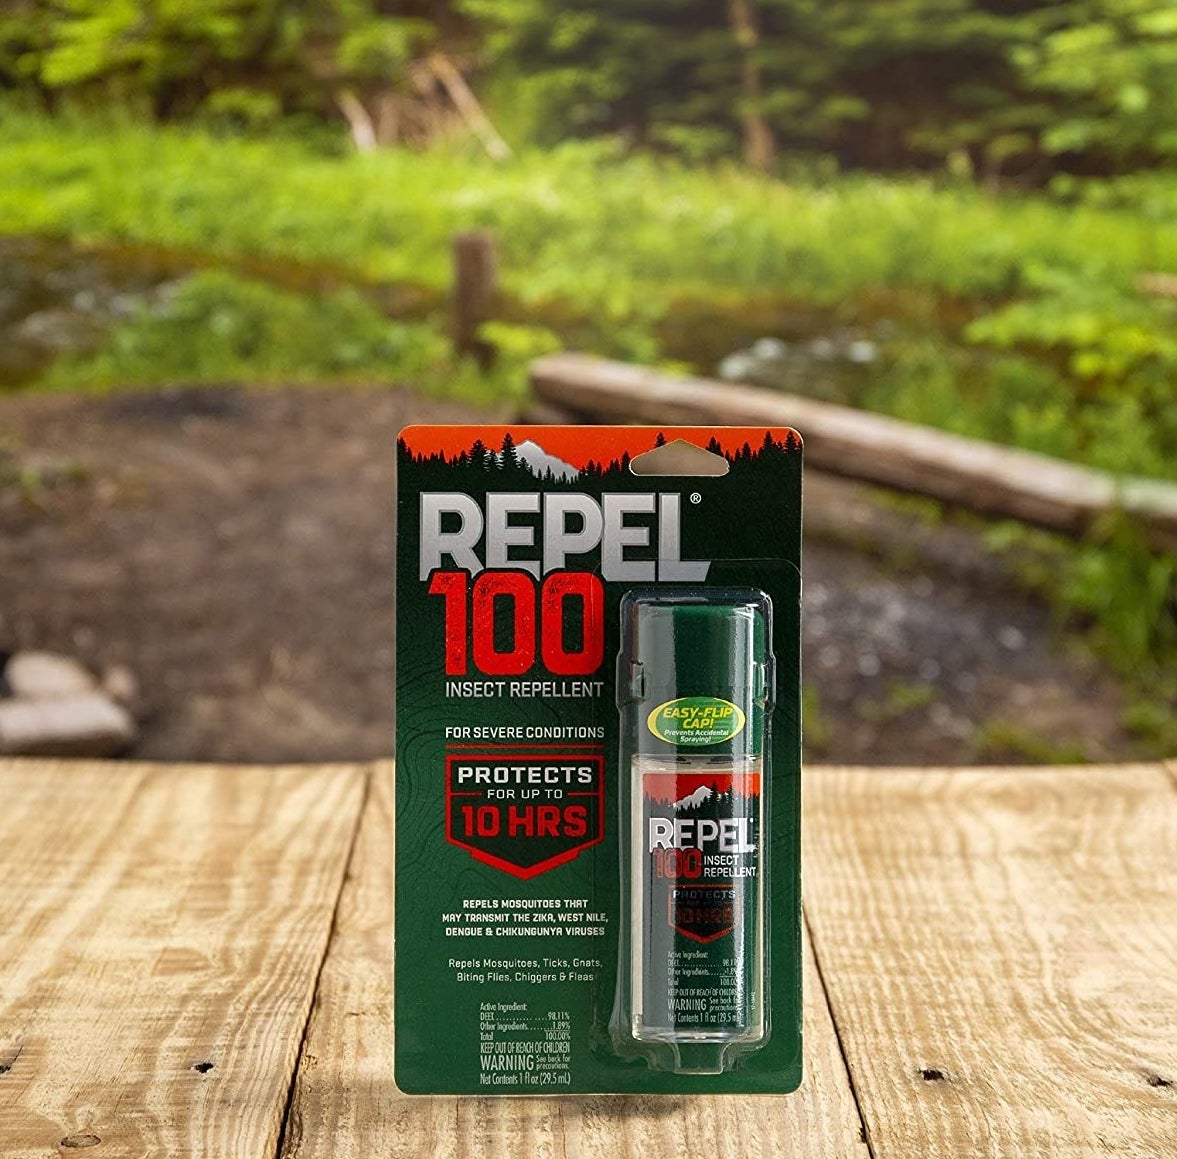 Repel 100 pump spray insect repellent